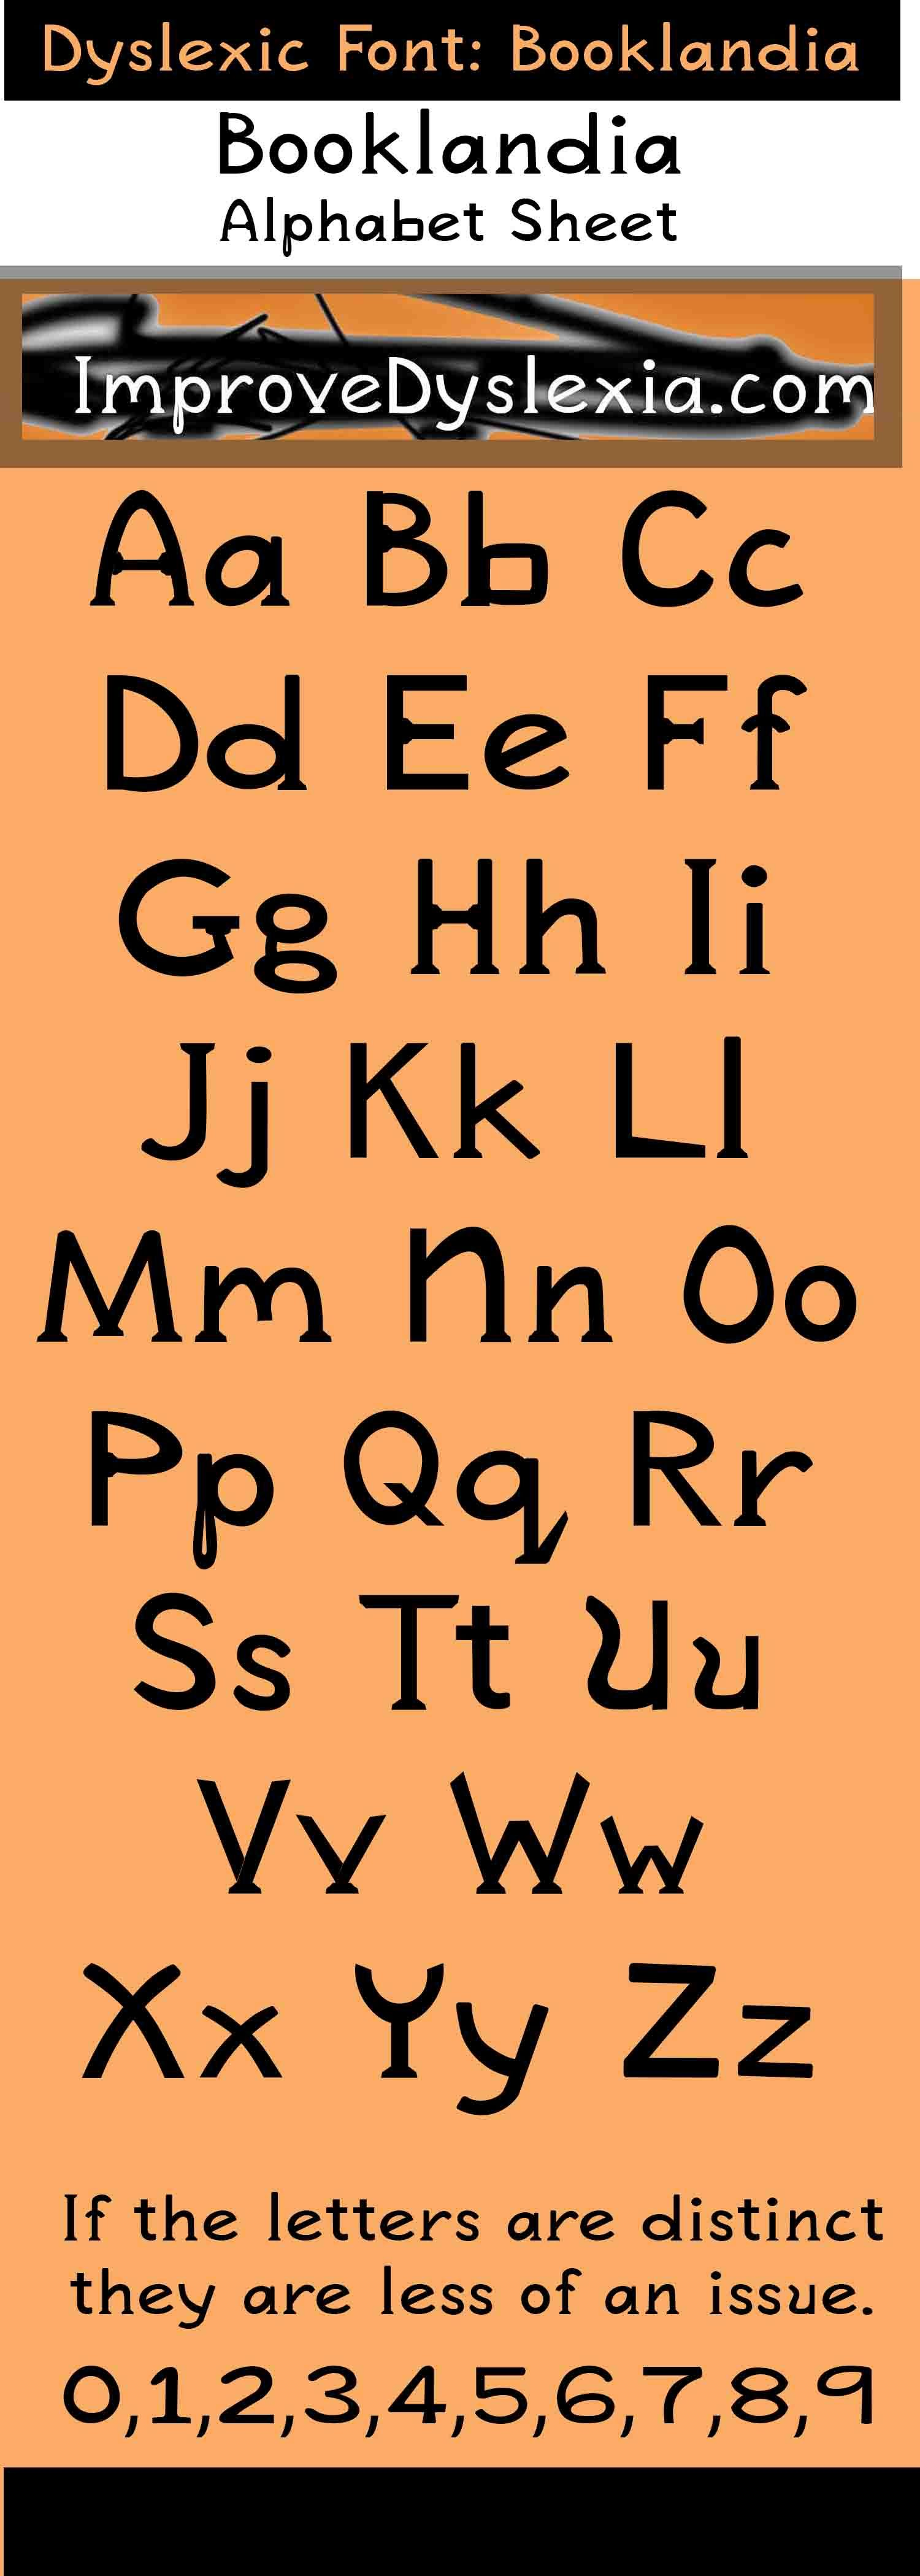 Booklandia Dyslexia Font And Alphabet Example Sheet